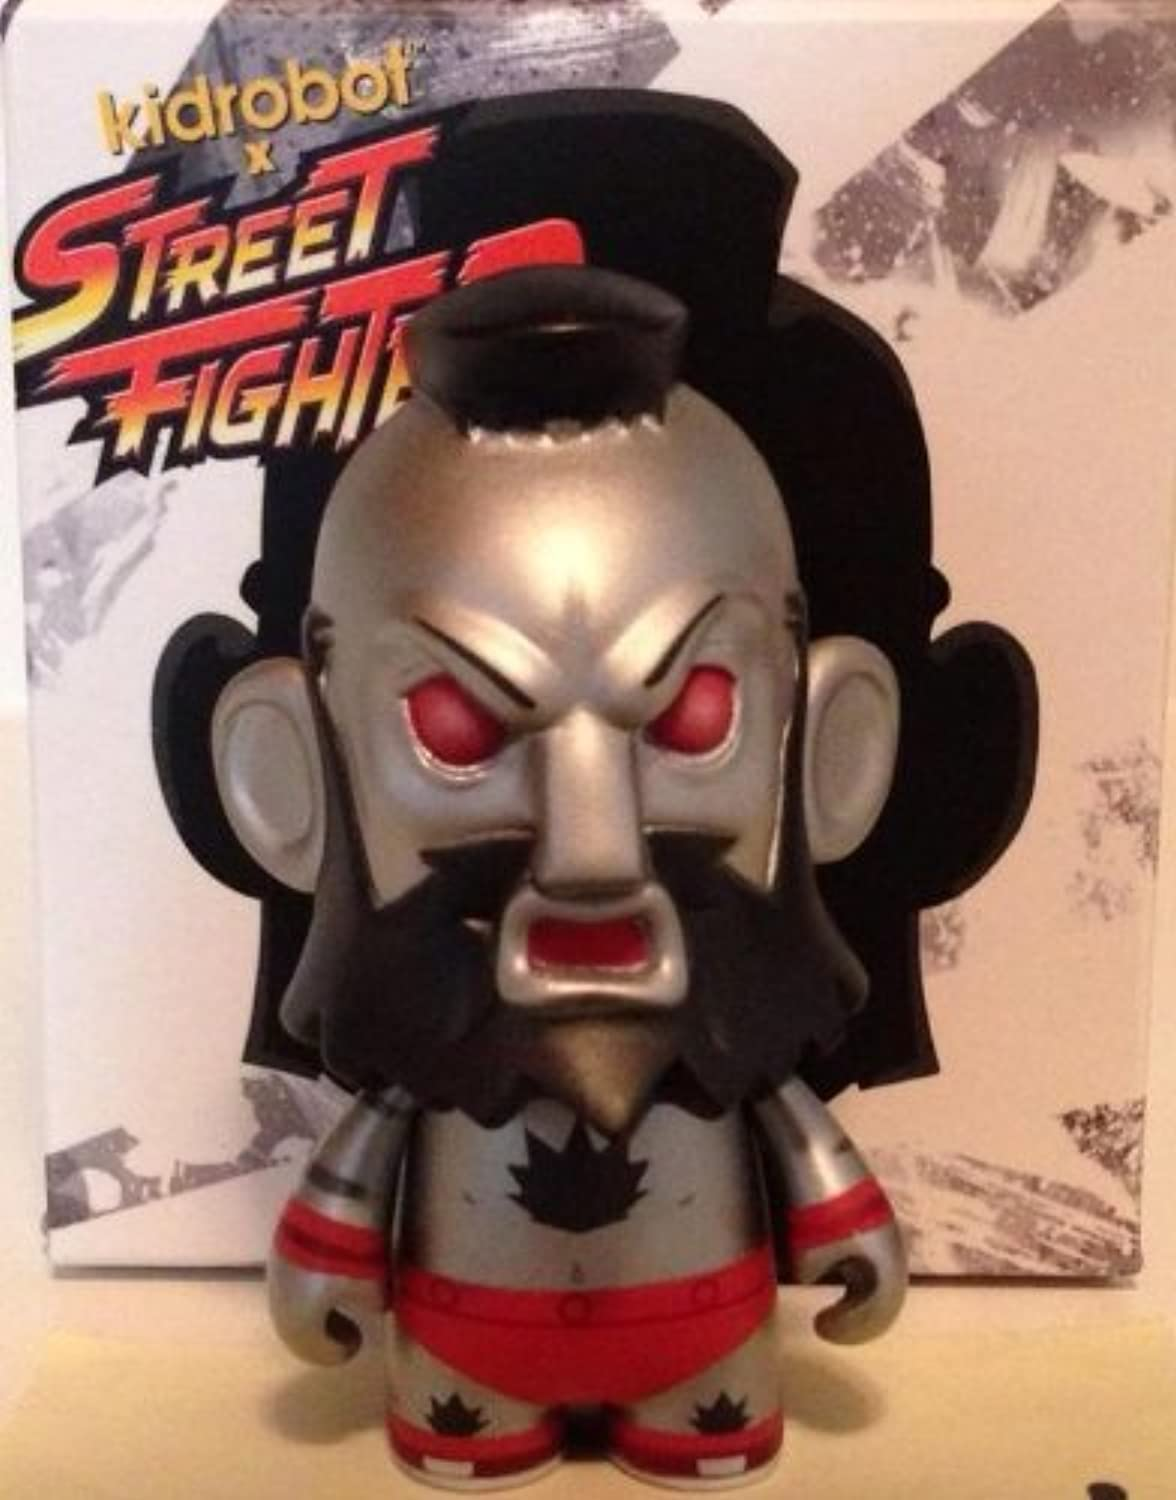 2013 Exclusive San Diego ComicCon Kidrobot x Street Fighter Mecha Zangief Figure by Street Fighter